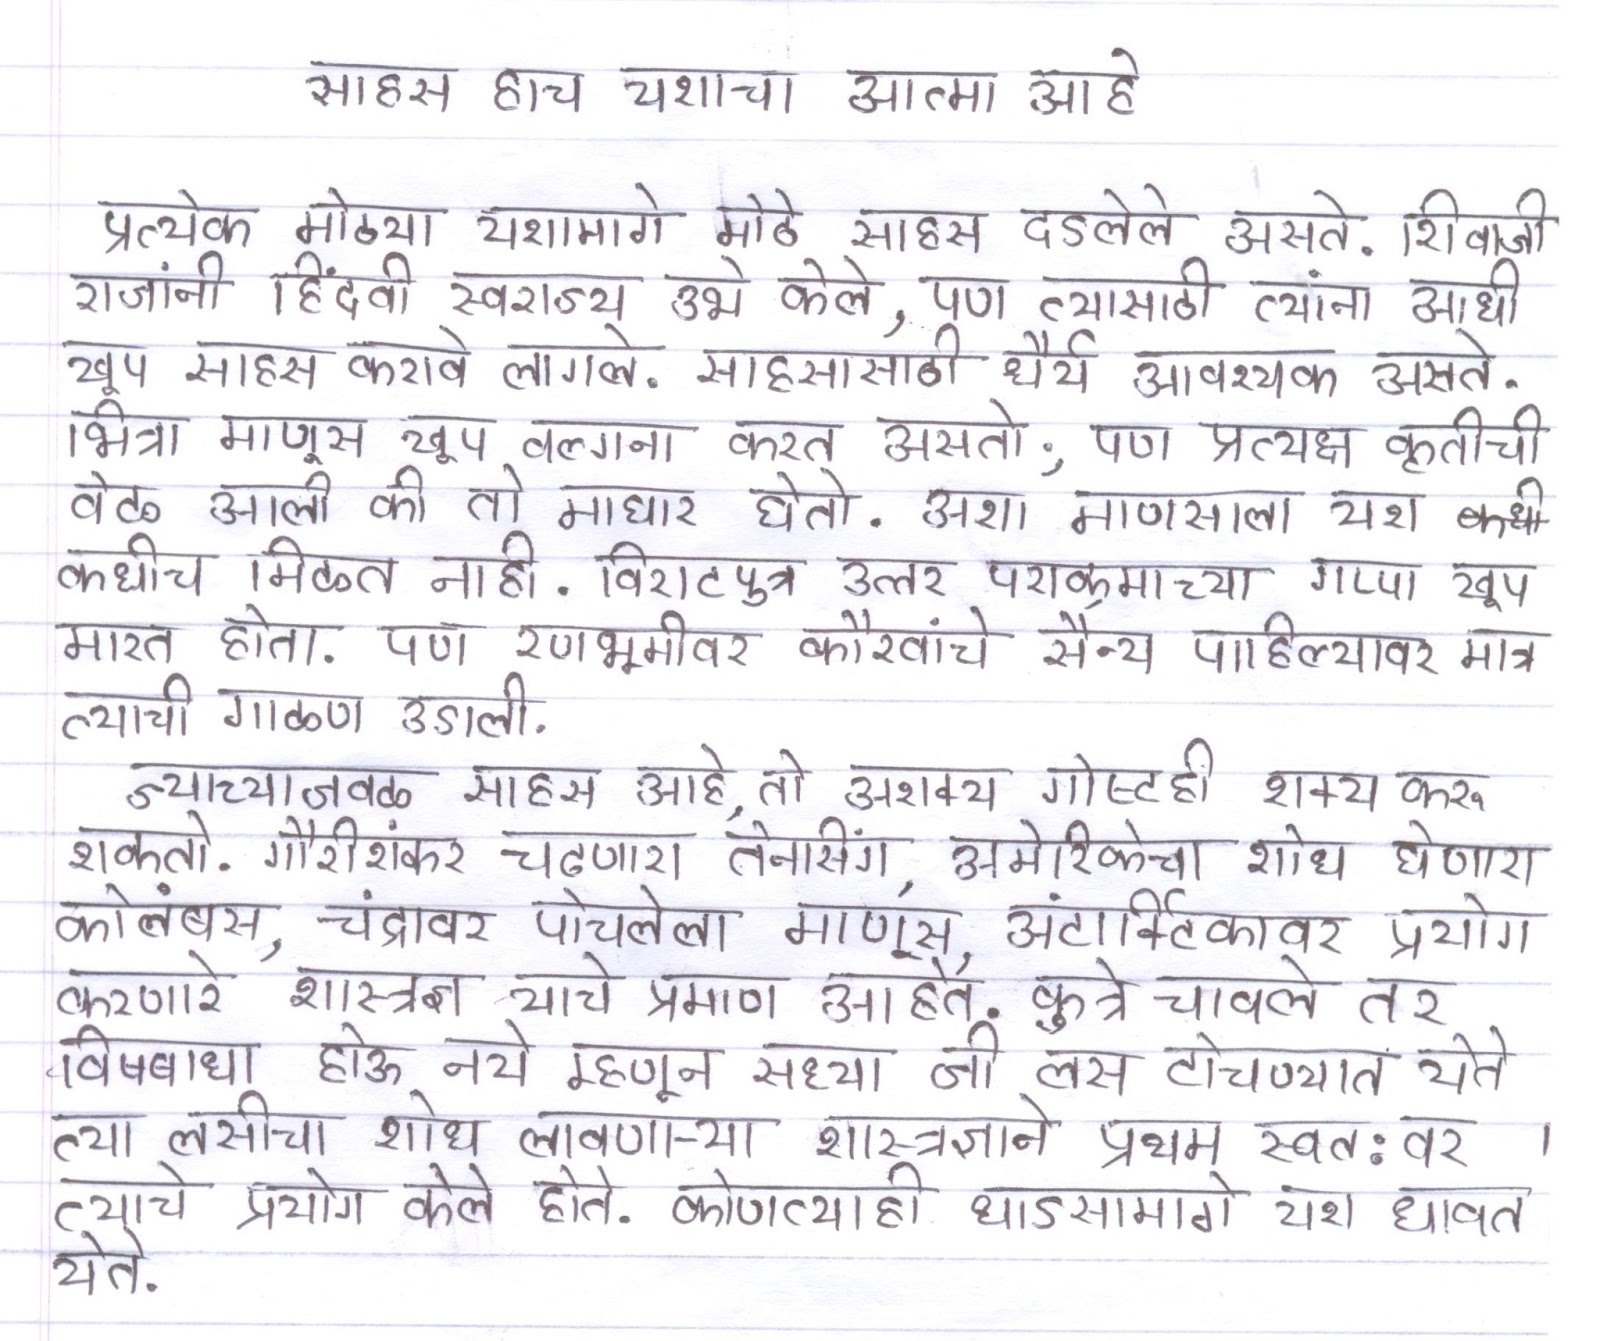 marathi essay writing sanskar kala darpan article writing competition senior marathi sanskar kala darpan